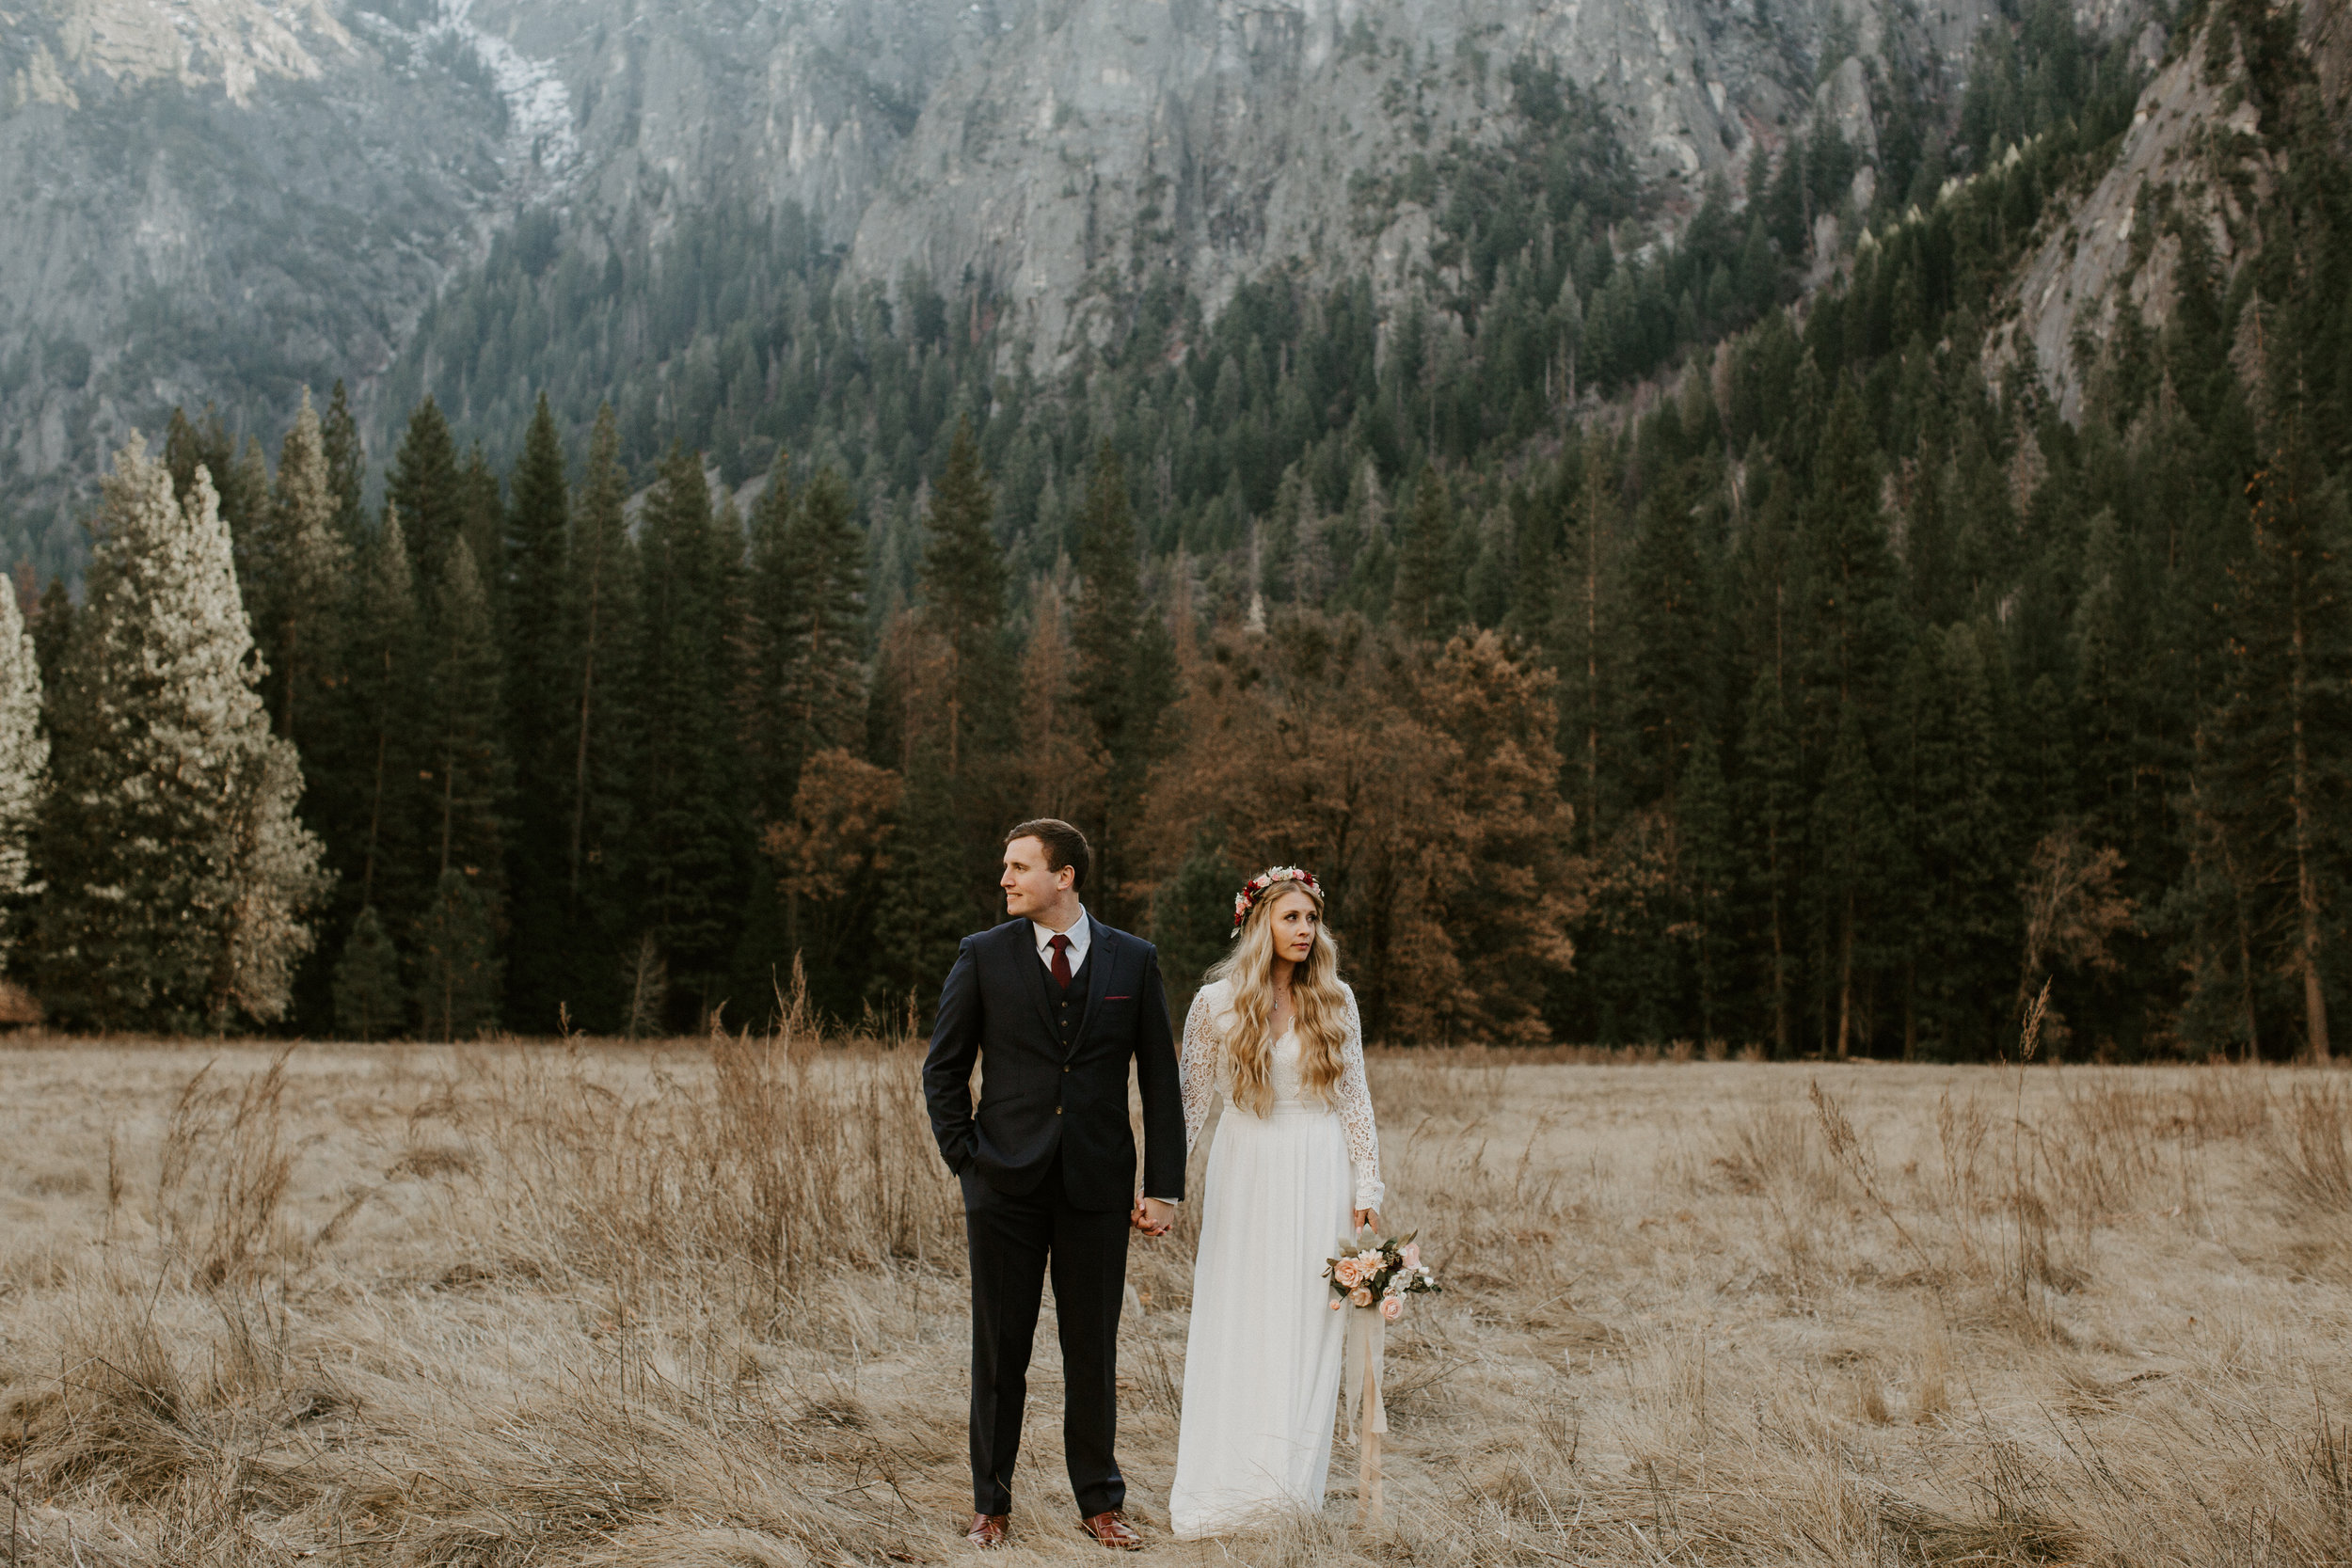 Celia + Will Yosemite Elopement-135.jpg